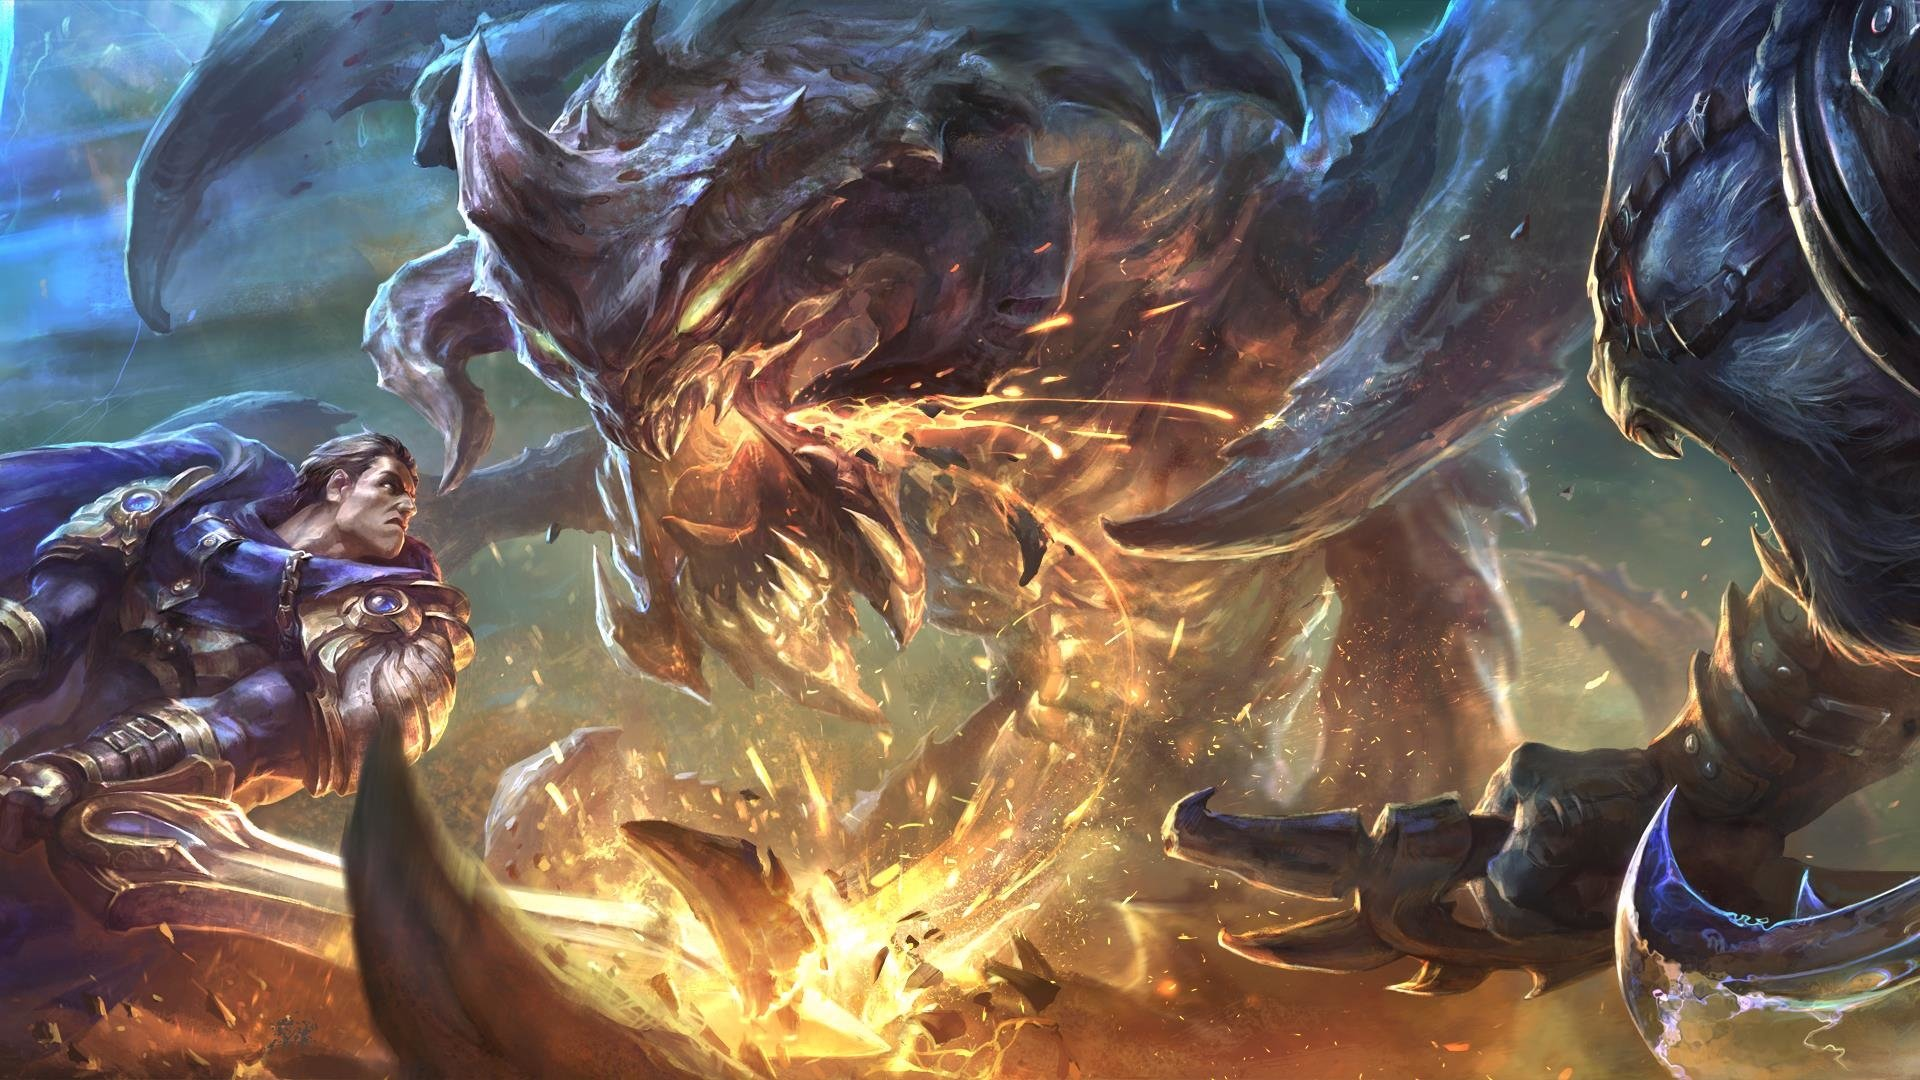 Lol Wallpapers Hd 1980x1080 League Of Legends Full Hd Wallpaper And Background